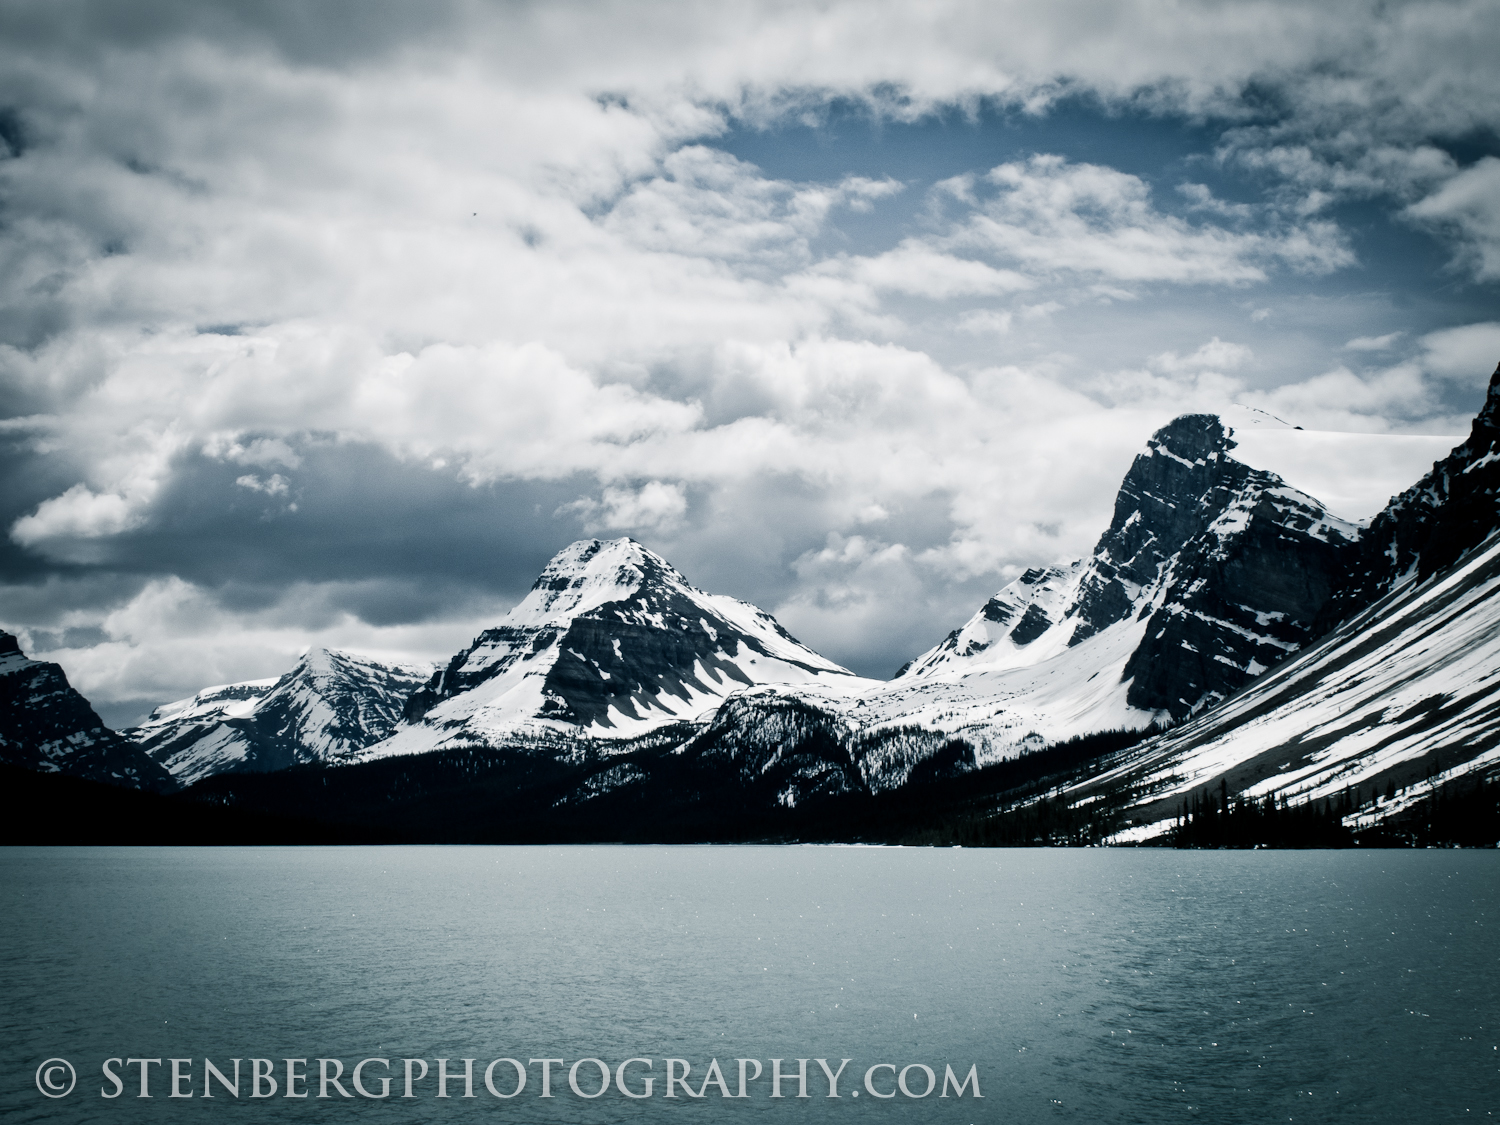 Mountain Landscape Photography